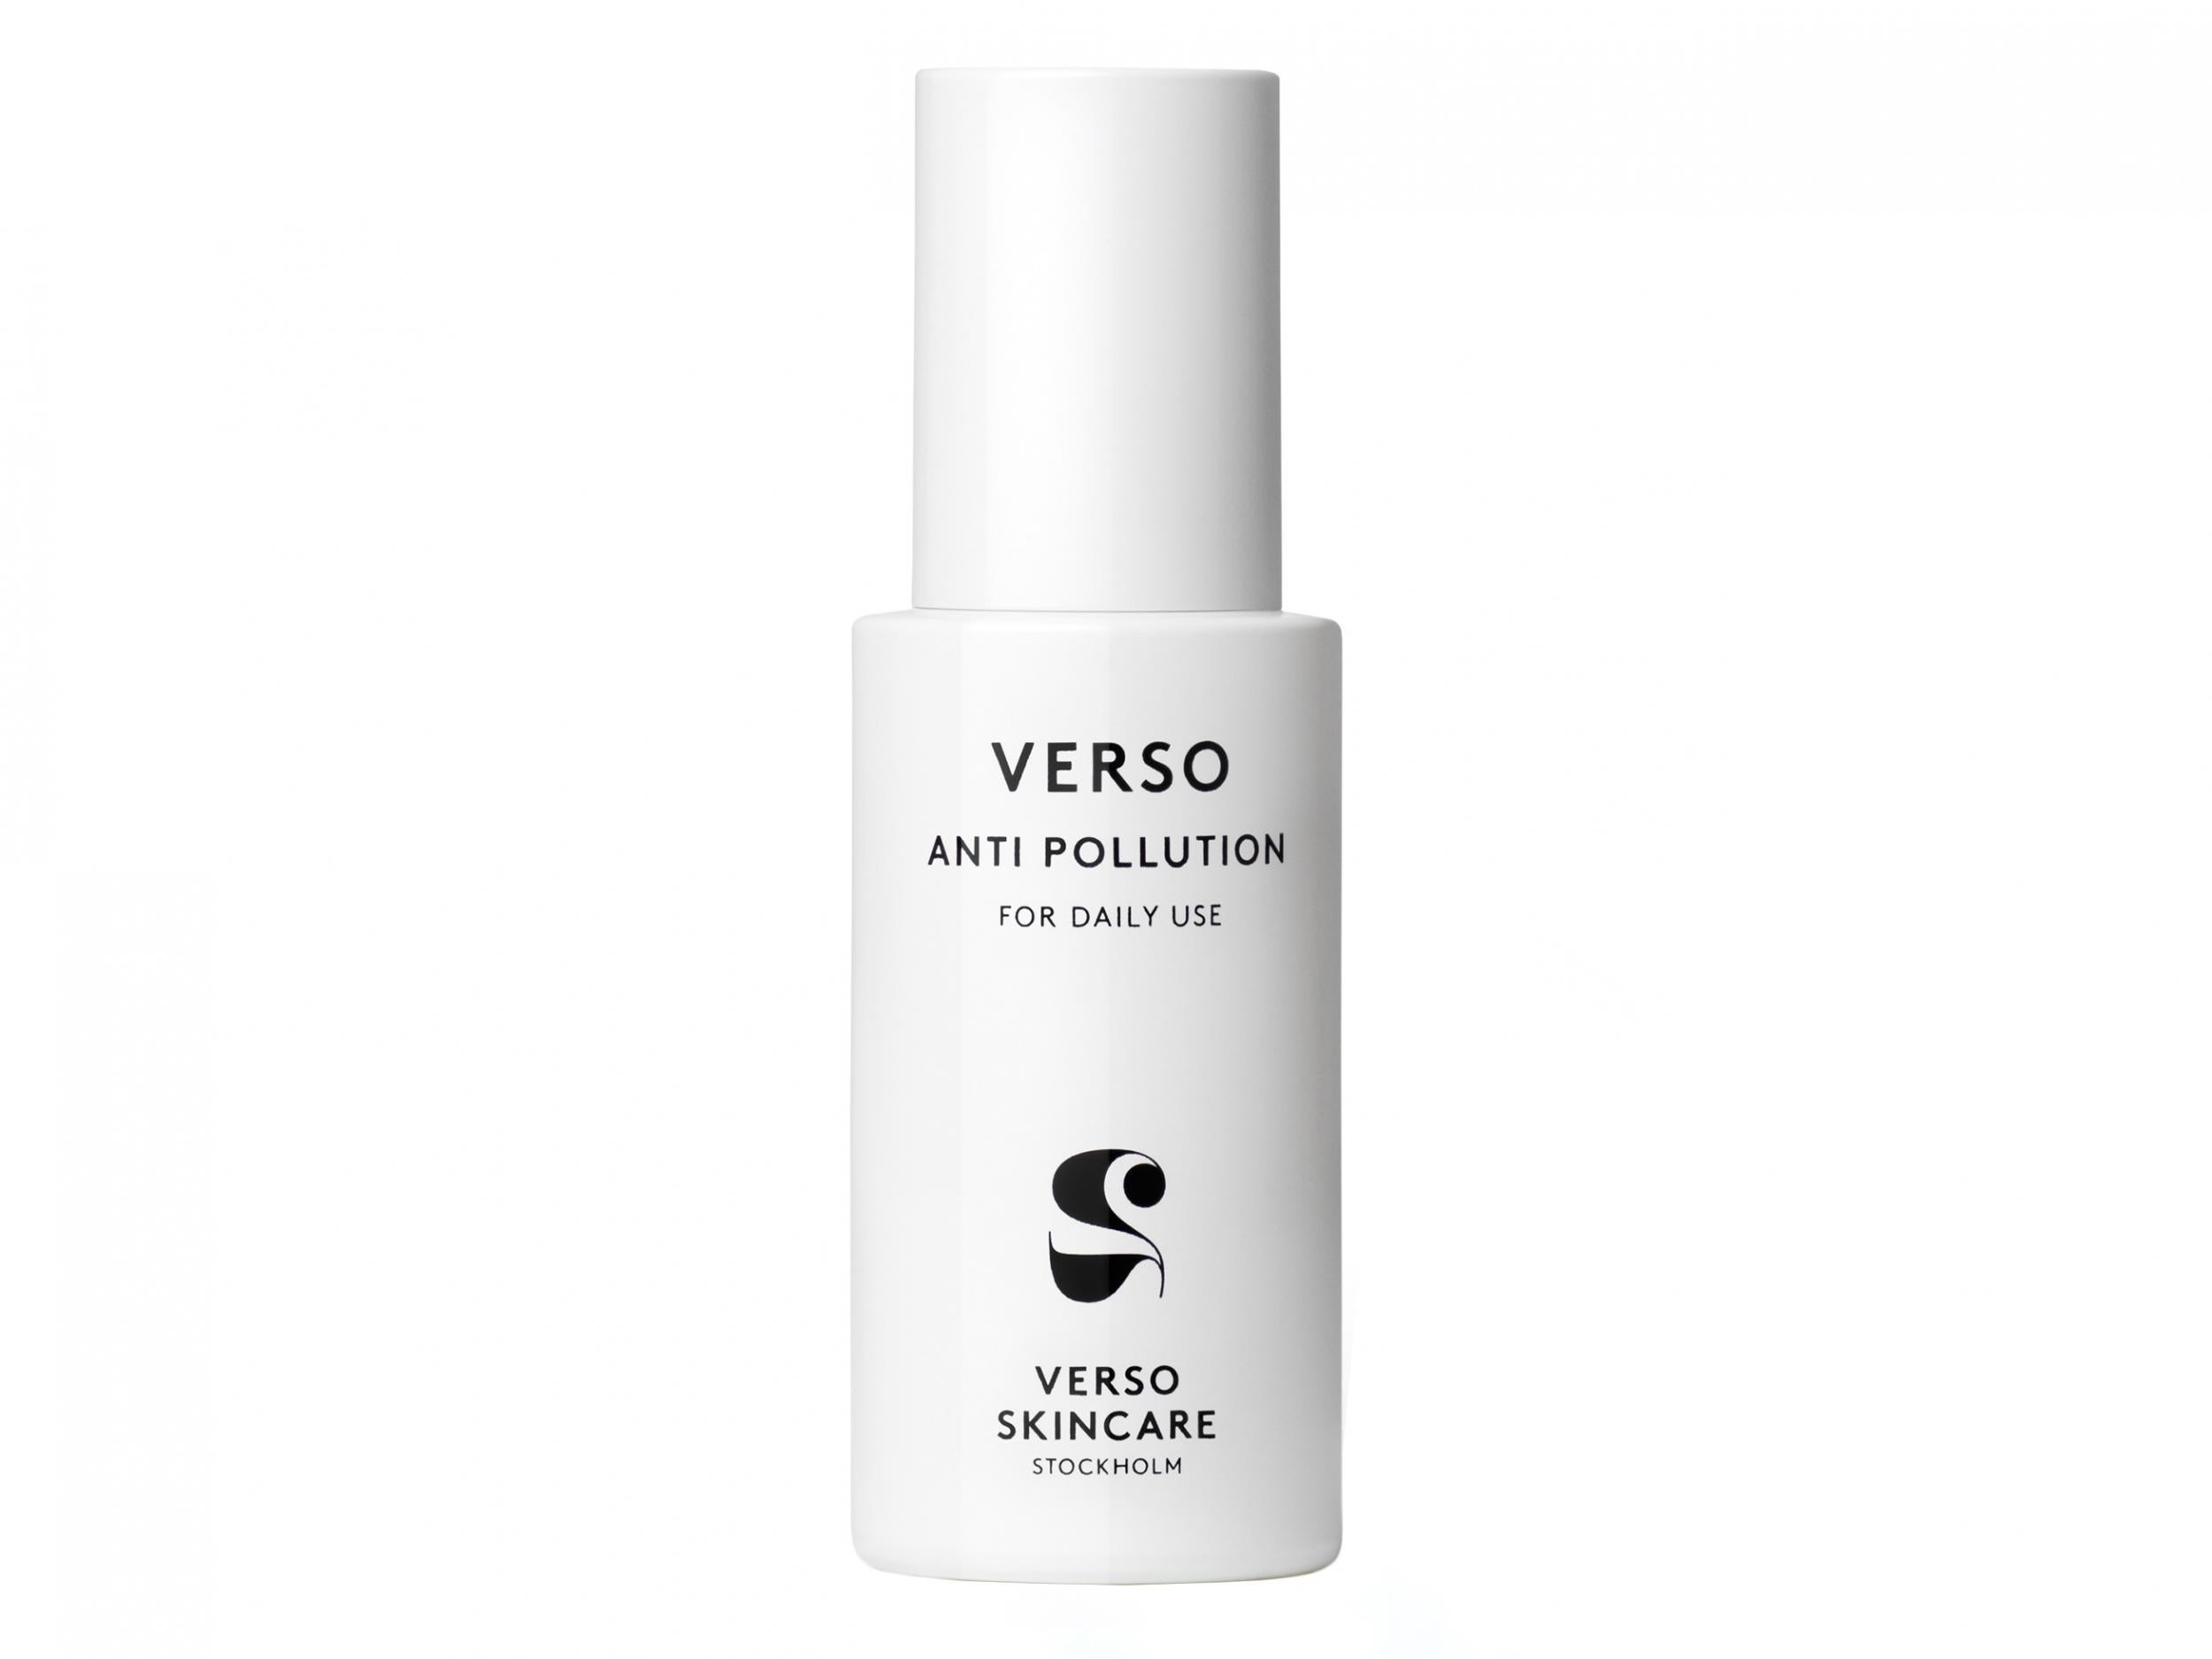 8 best anti-pollution skincare products | The Independent